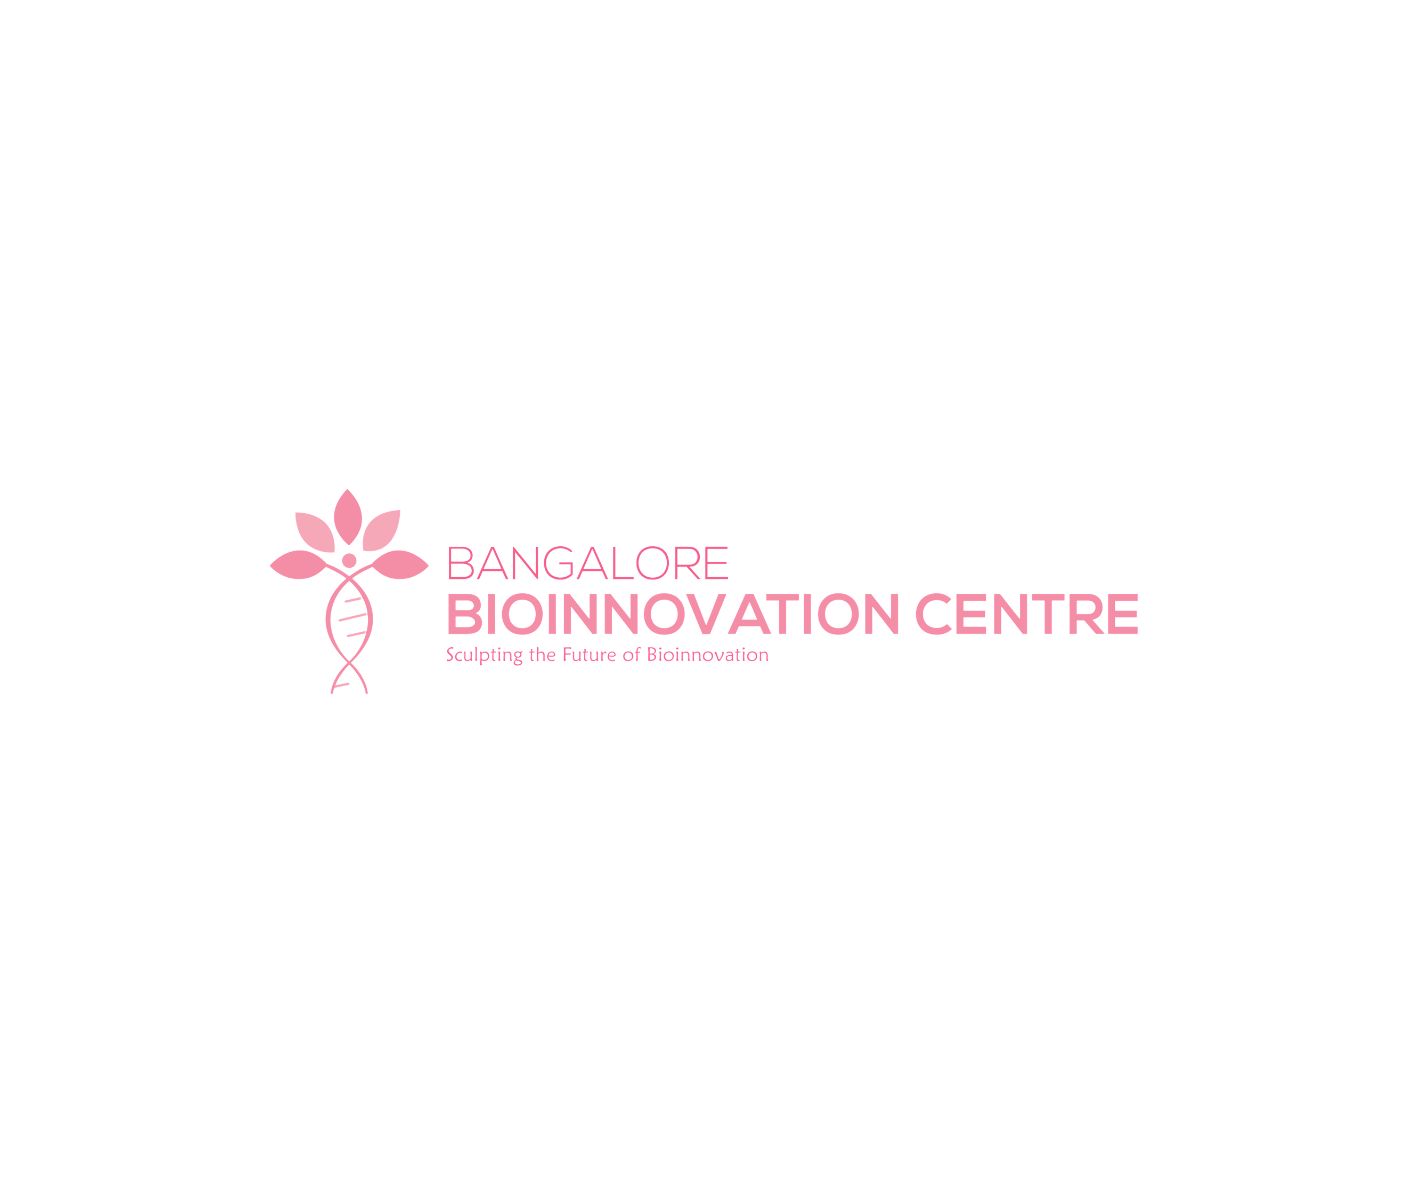 Bangalore Bioinnovation Centre Logo